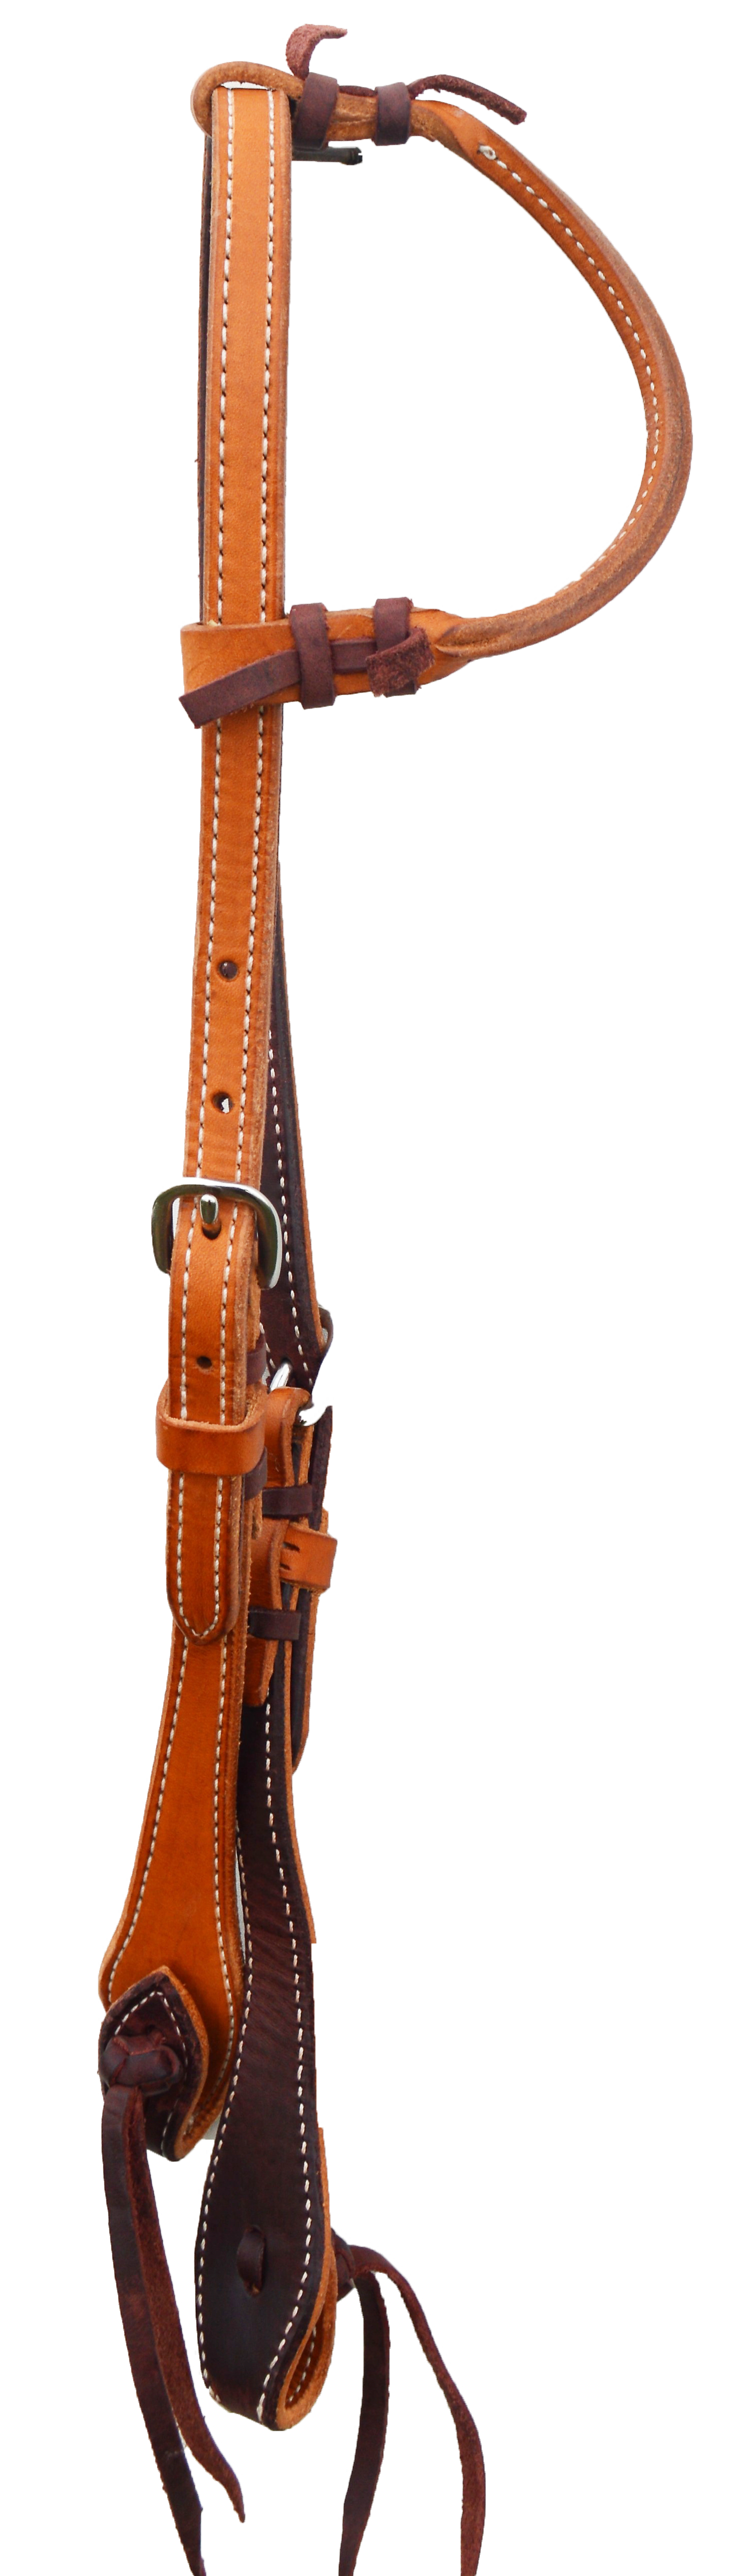 E-2071-PK ELITE ONE EAR HEADSTALL, HAND LACED, LATIGO LINED, PINEAPPLE KNOT, SS HARDWARE